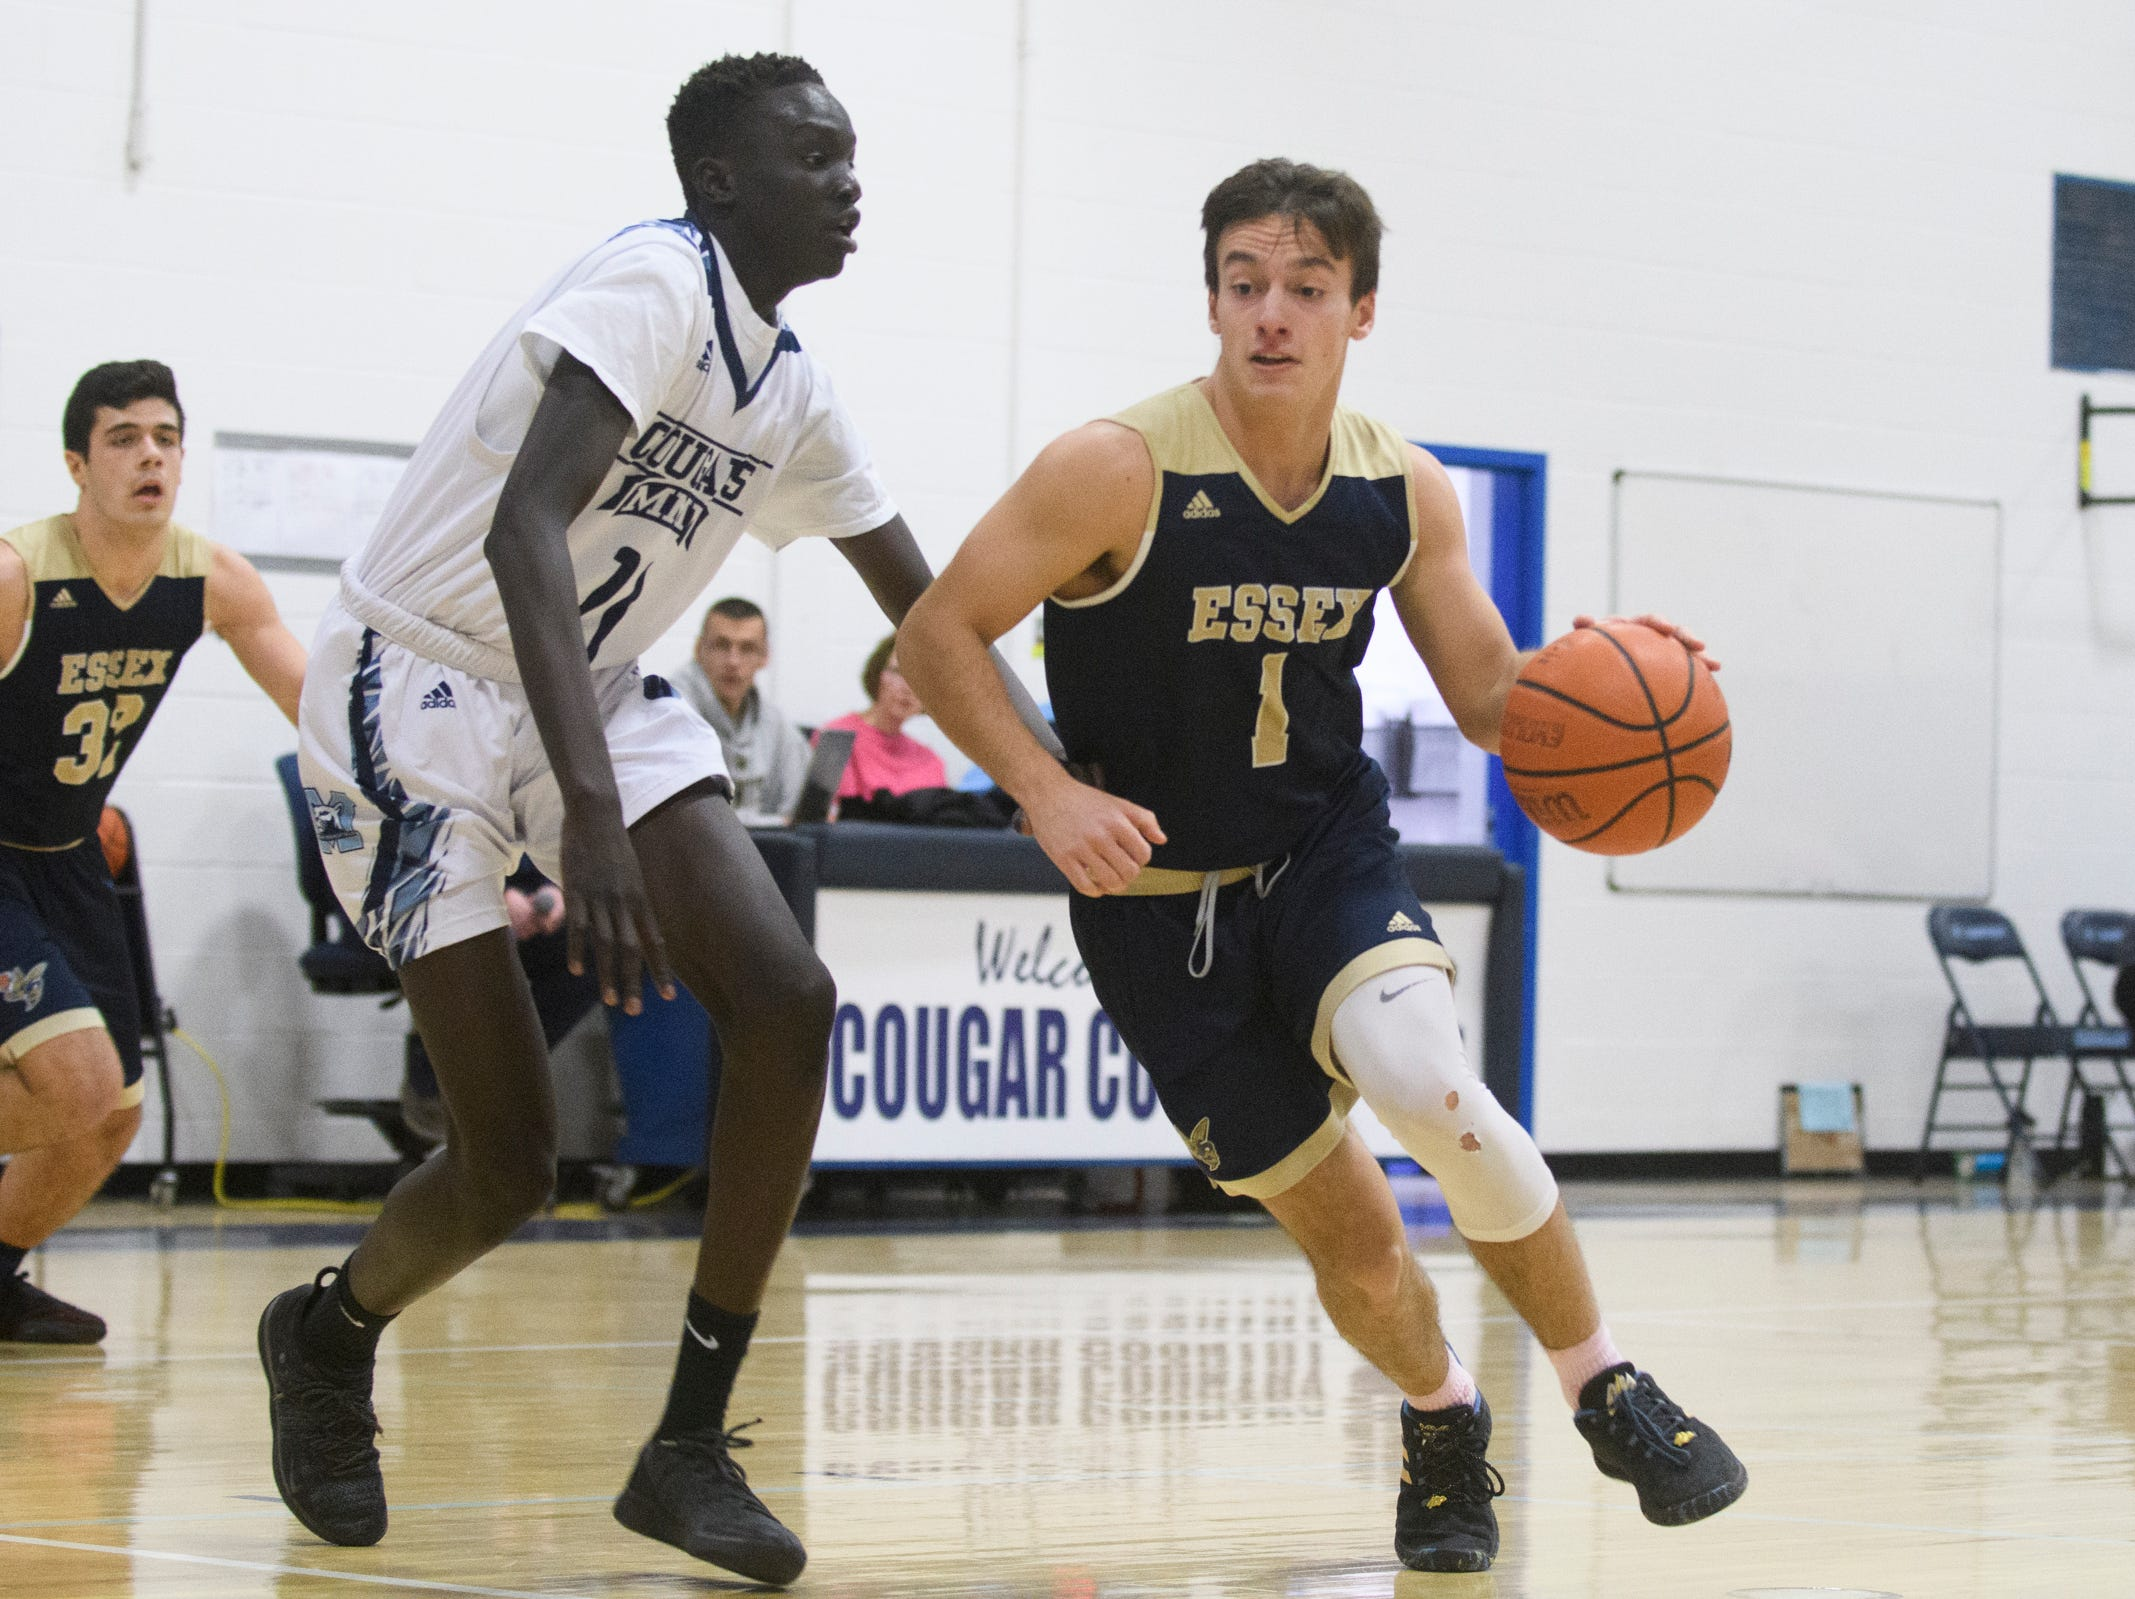 Essex's Robbie Meslin (1) drives to the hoop past MMU's Taylor Bowen (11) during the boys basketball game between the Essex Hornets and the Mount Mansfield Cougars at MMU High School on Wednesday night February 13, 2019 in Jericho, Vermont.